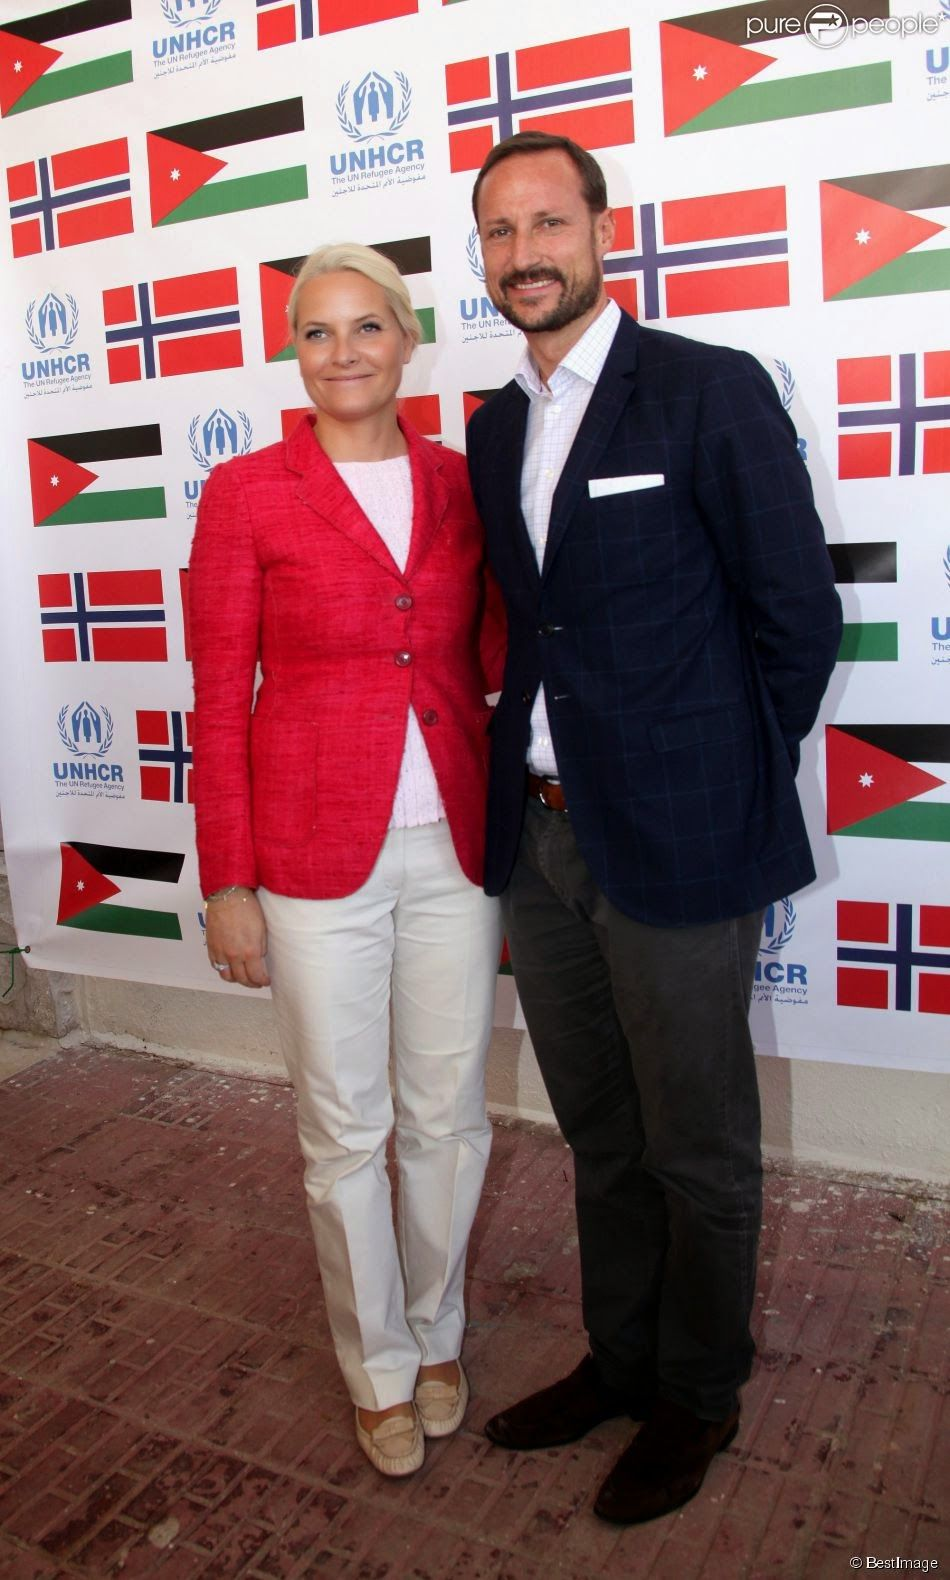 Queens & Princesses - Prince Haakon and Crown Princess Mette Marit had their last day in Jordan to meet with refugees in relief camps in Jordan. This morning, they also met with the King of Jordan.